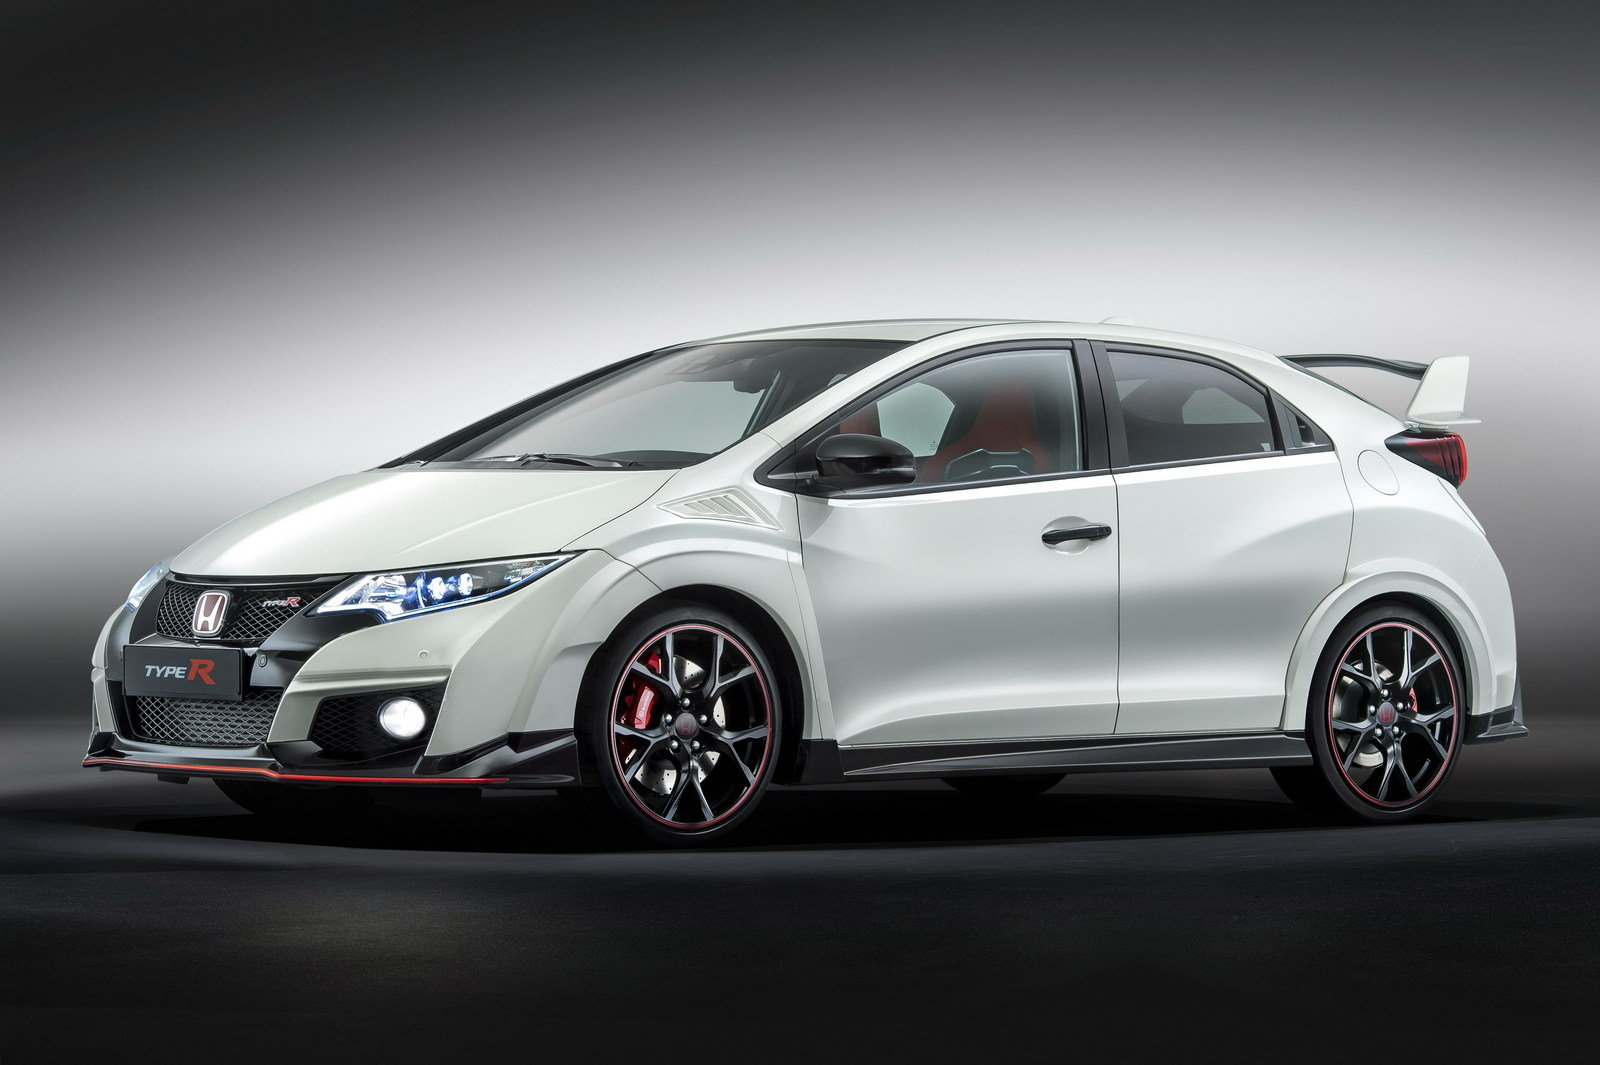 2016 honda civic type r picture 619532 car review. Black Bedroom Furniture Sets. Home Design Ideas